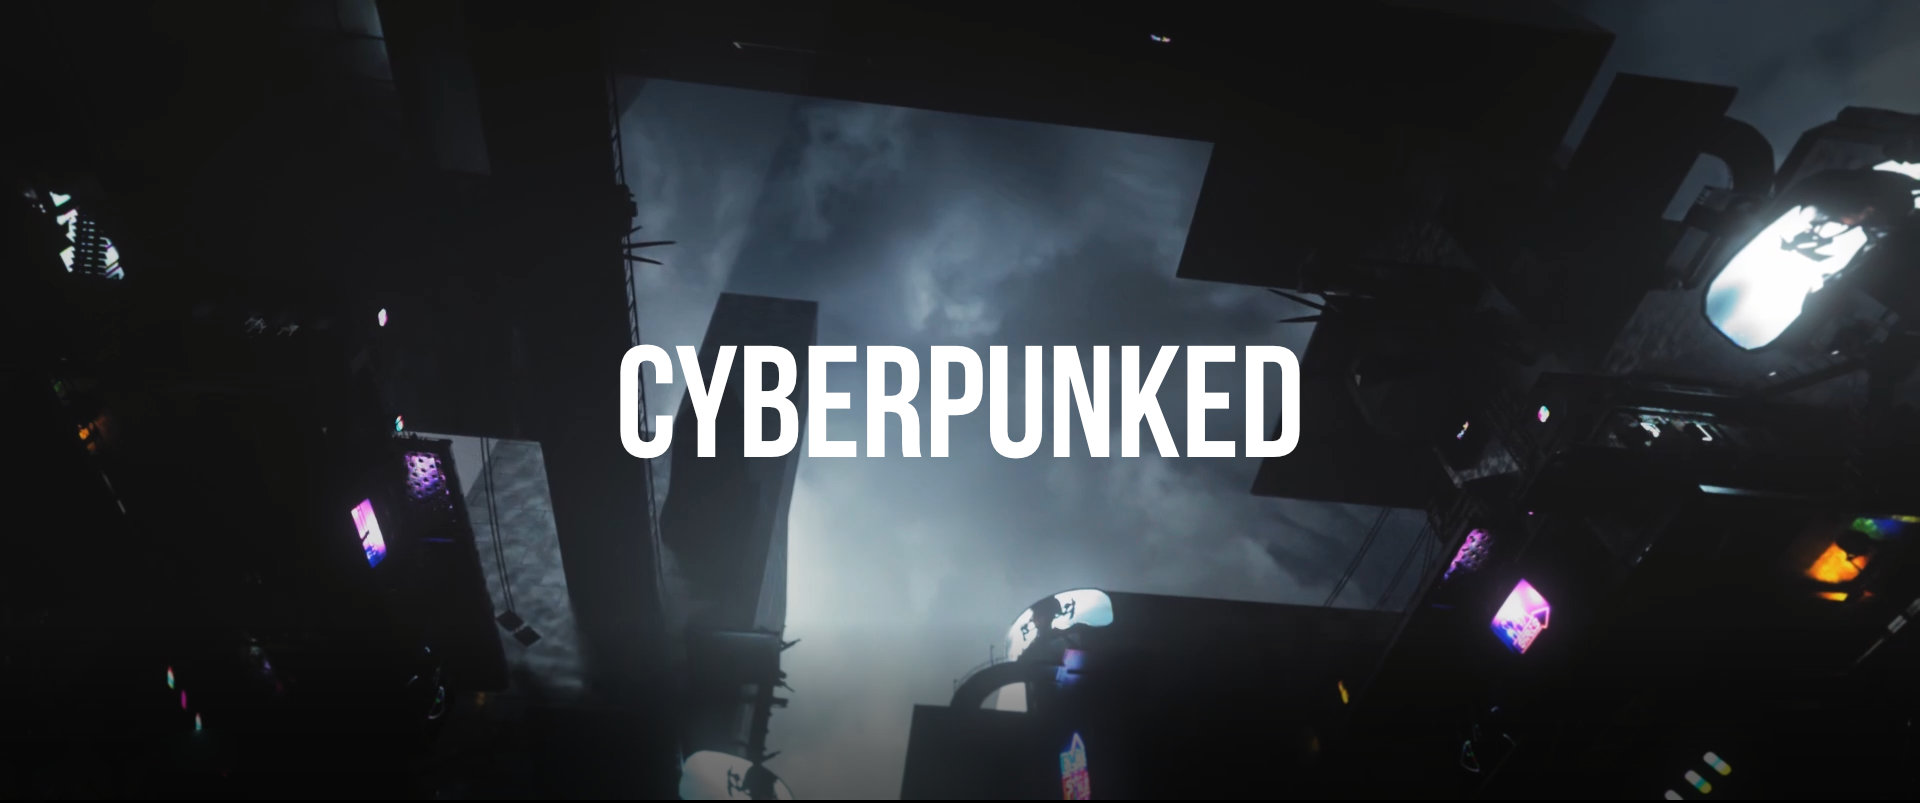 Cyberpunked | My RØDE Reel 2020